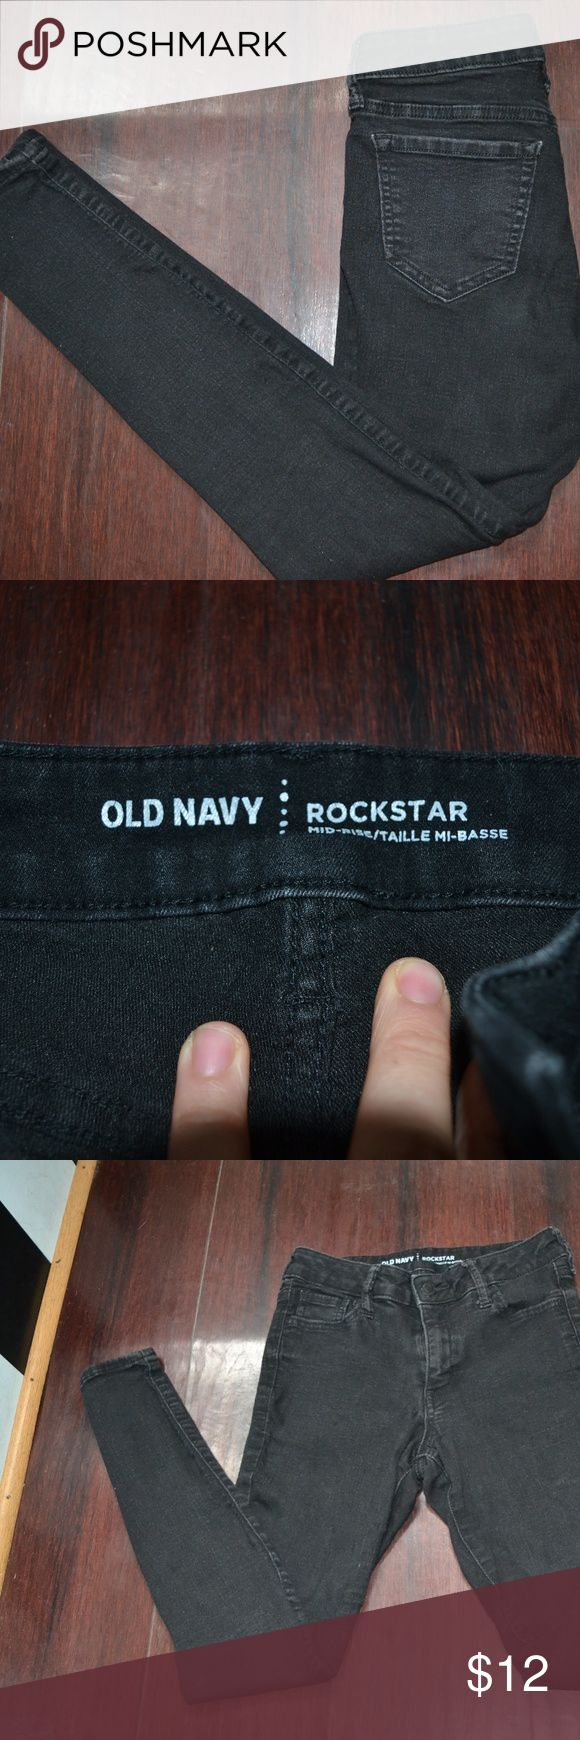 Rockstar Black Jeans size 4P Old Navy Rockstar mid-rise black skinny jeans. Size 4P, excellent condition! Old Navy Jeans Skinny